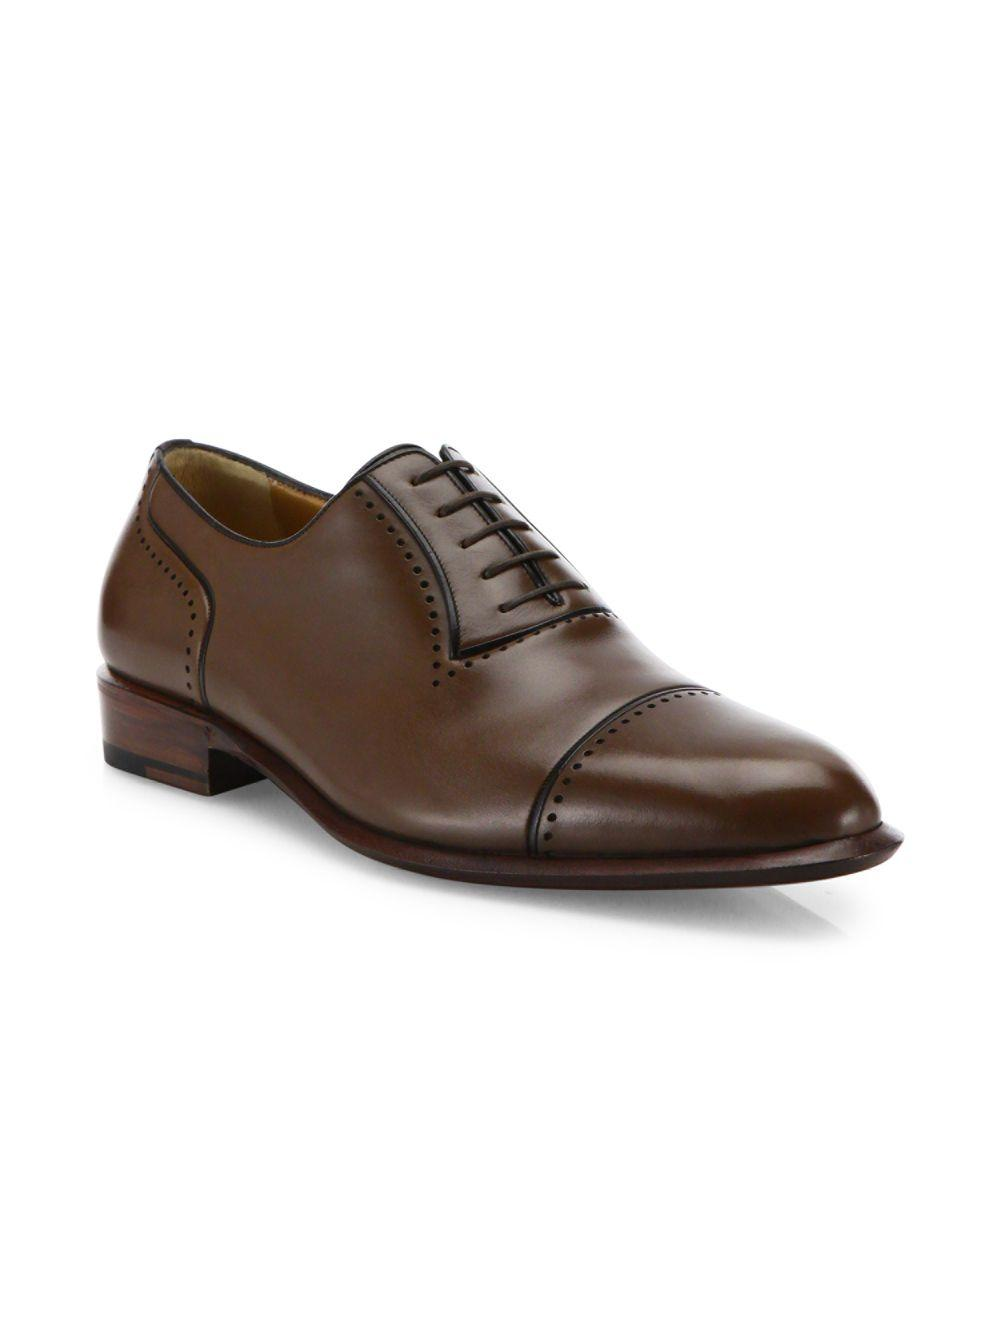 A.Testoni Perforated Leather Derby Shoes in Coffee (Brown) for Men